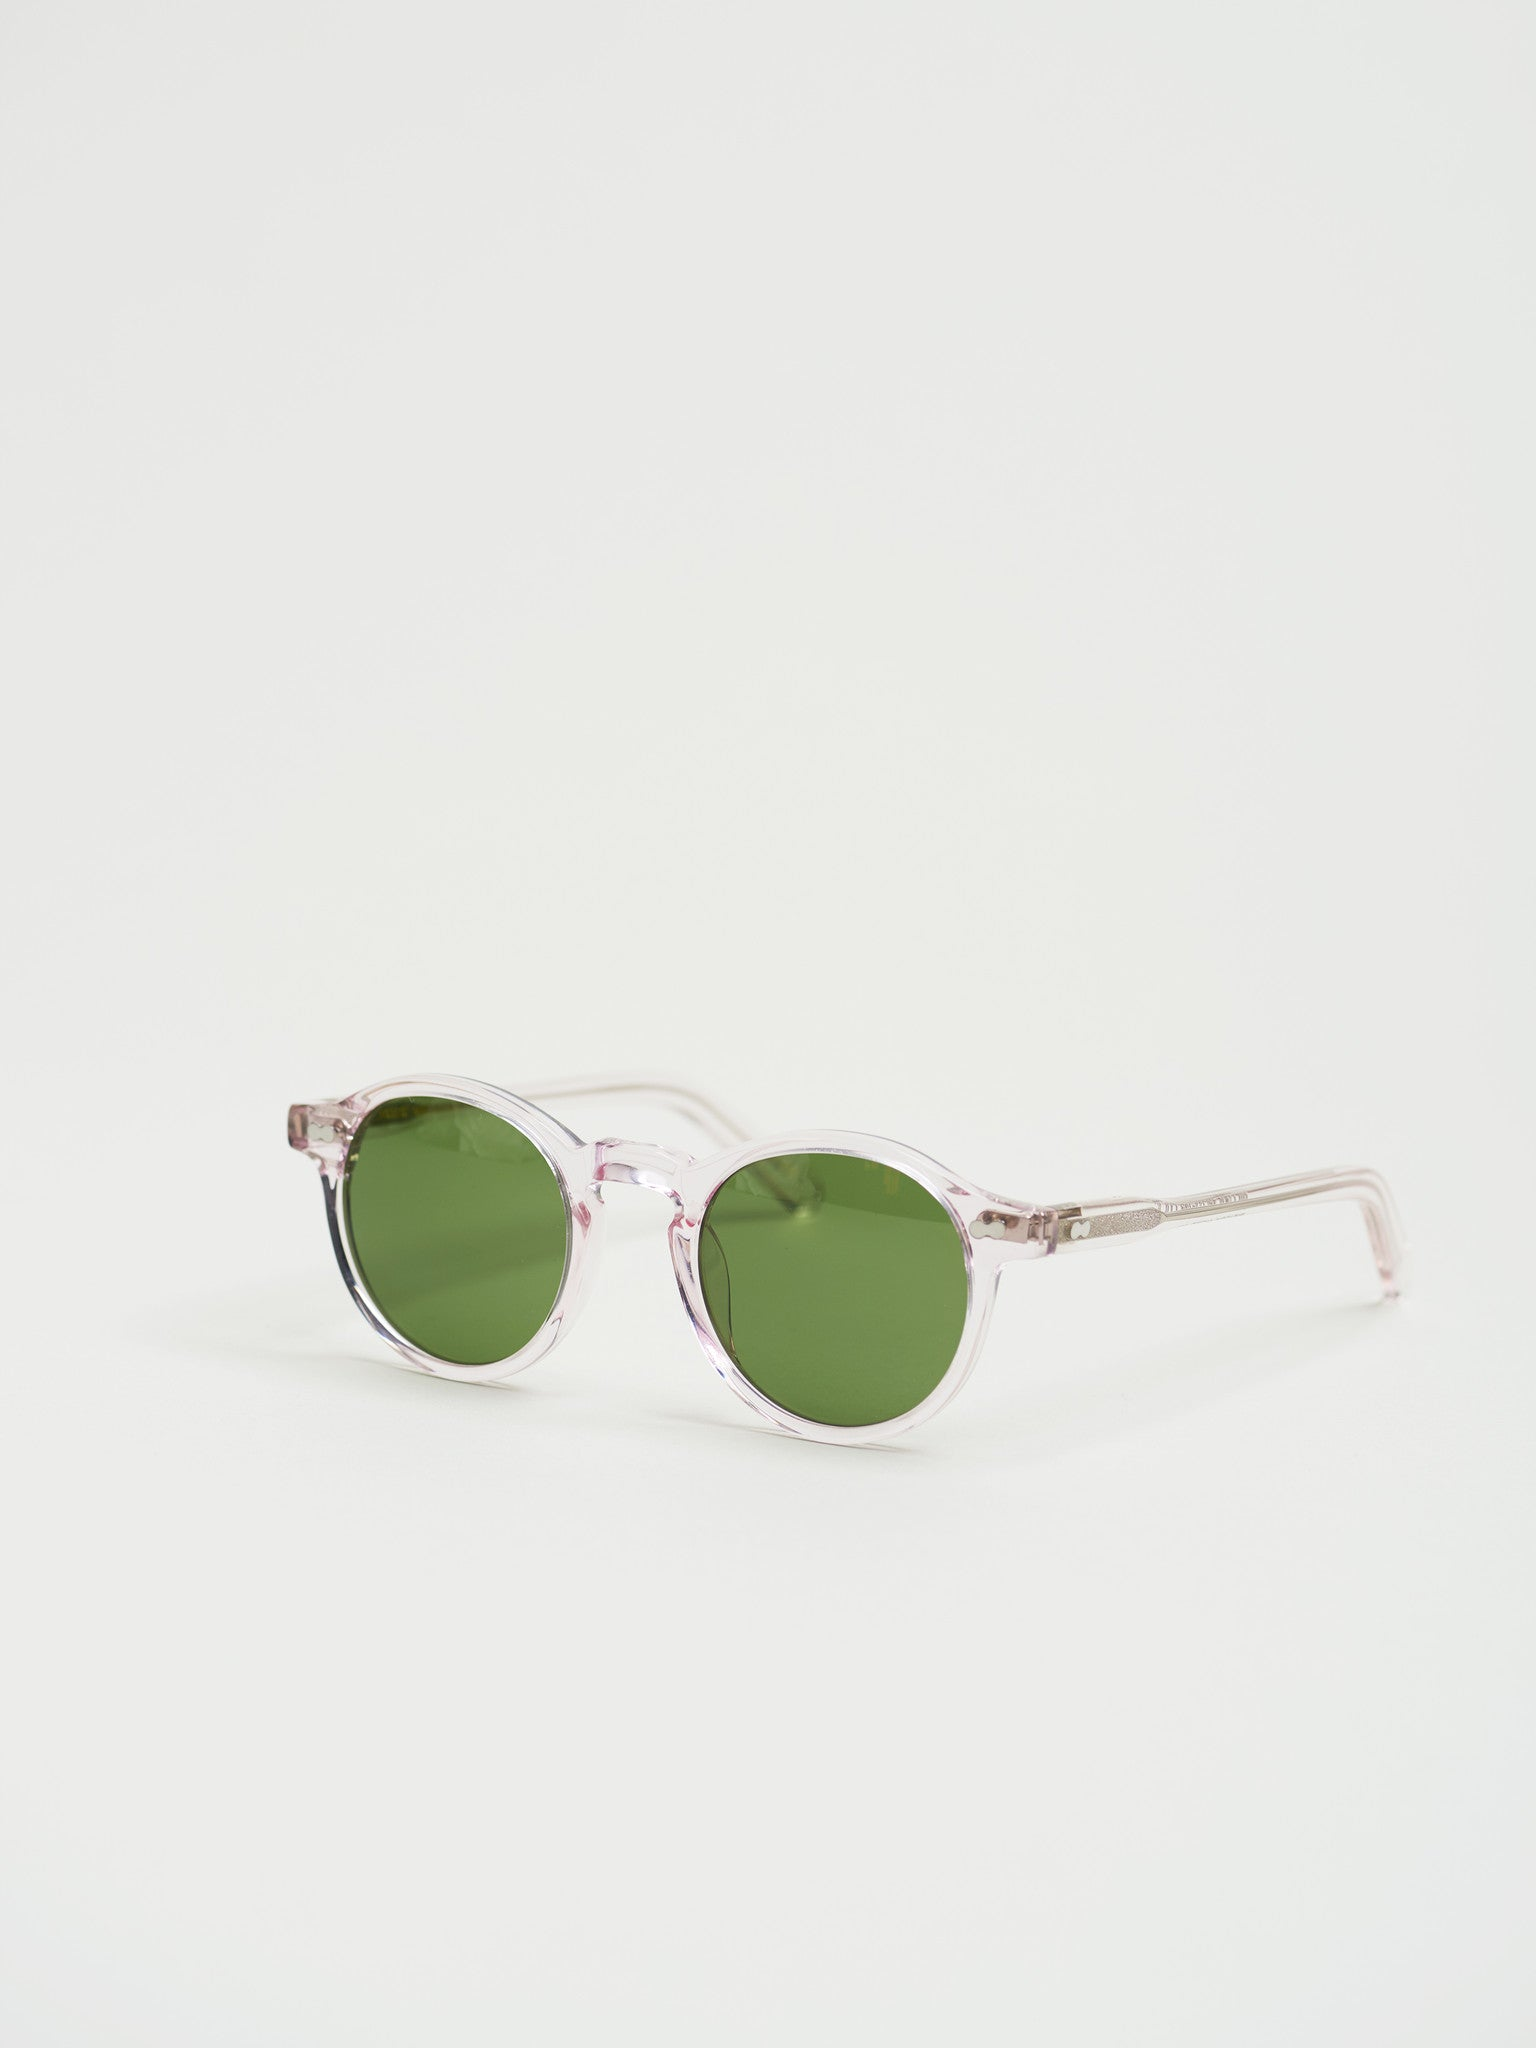 "Miltzen 46"", Blush with Green Lenses - Goods"